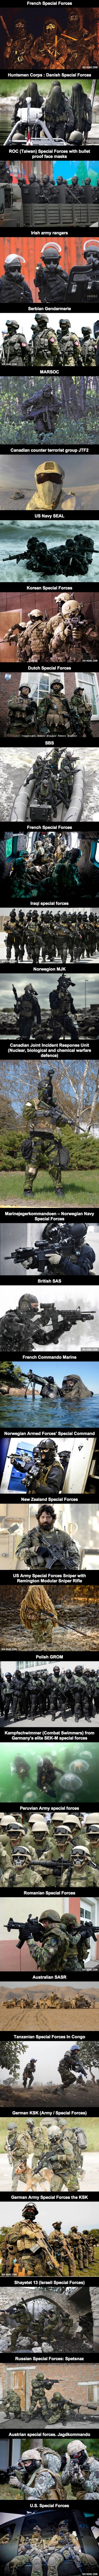 Special Forces of the World. I was waiting for a joke in there somewhere, but all these look scary as shit.